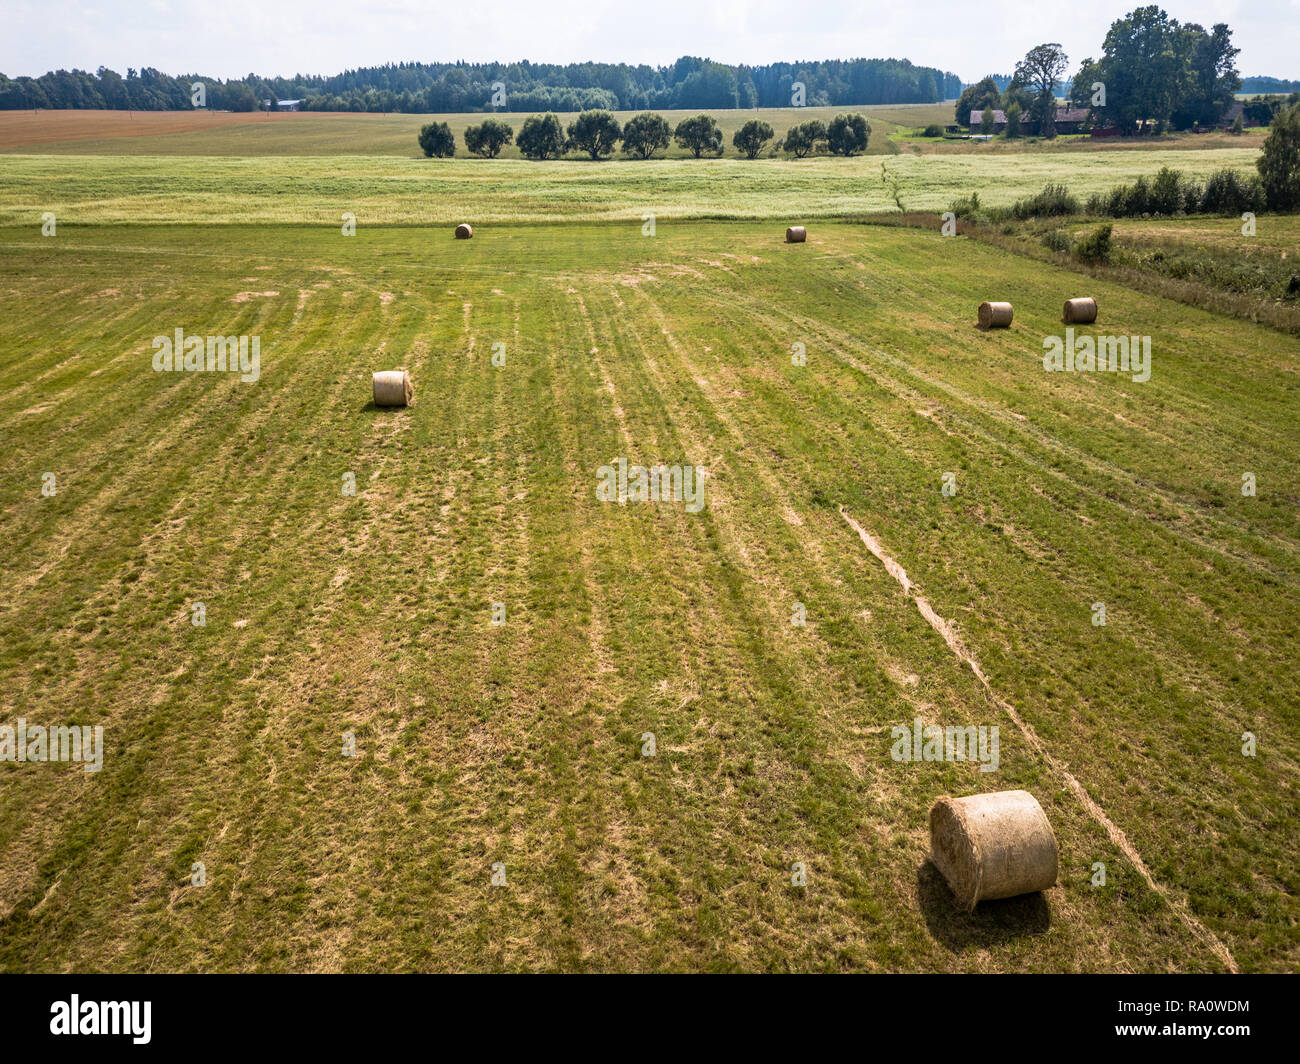 Aerial Drone Photo of Hay Rolls in the Wheat Field, Surrounded with Forests  - Sunny Summer Day - Stock Image